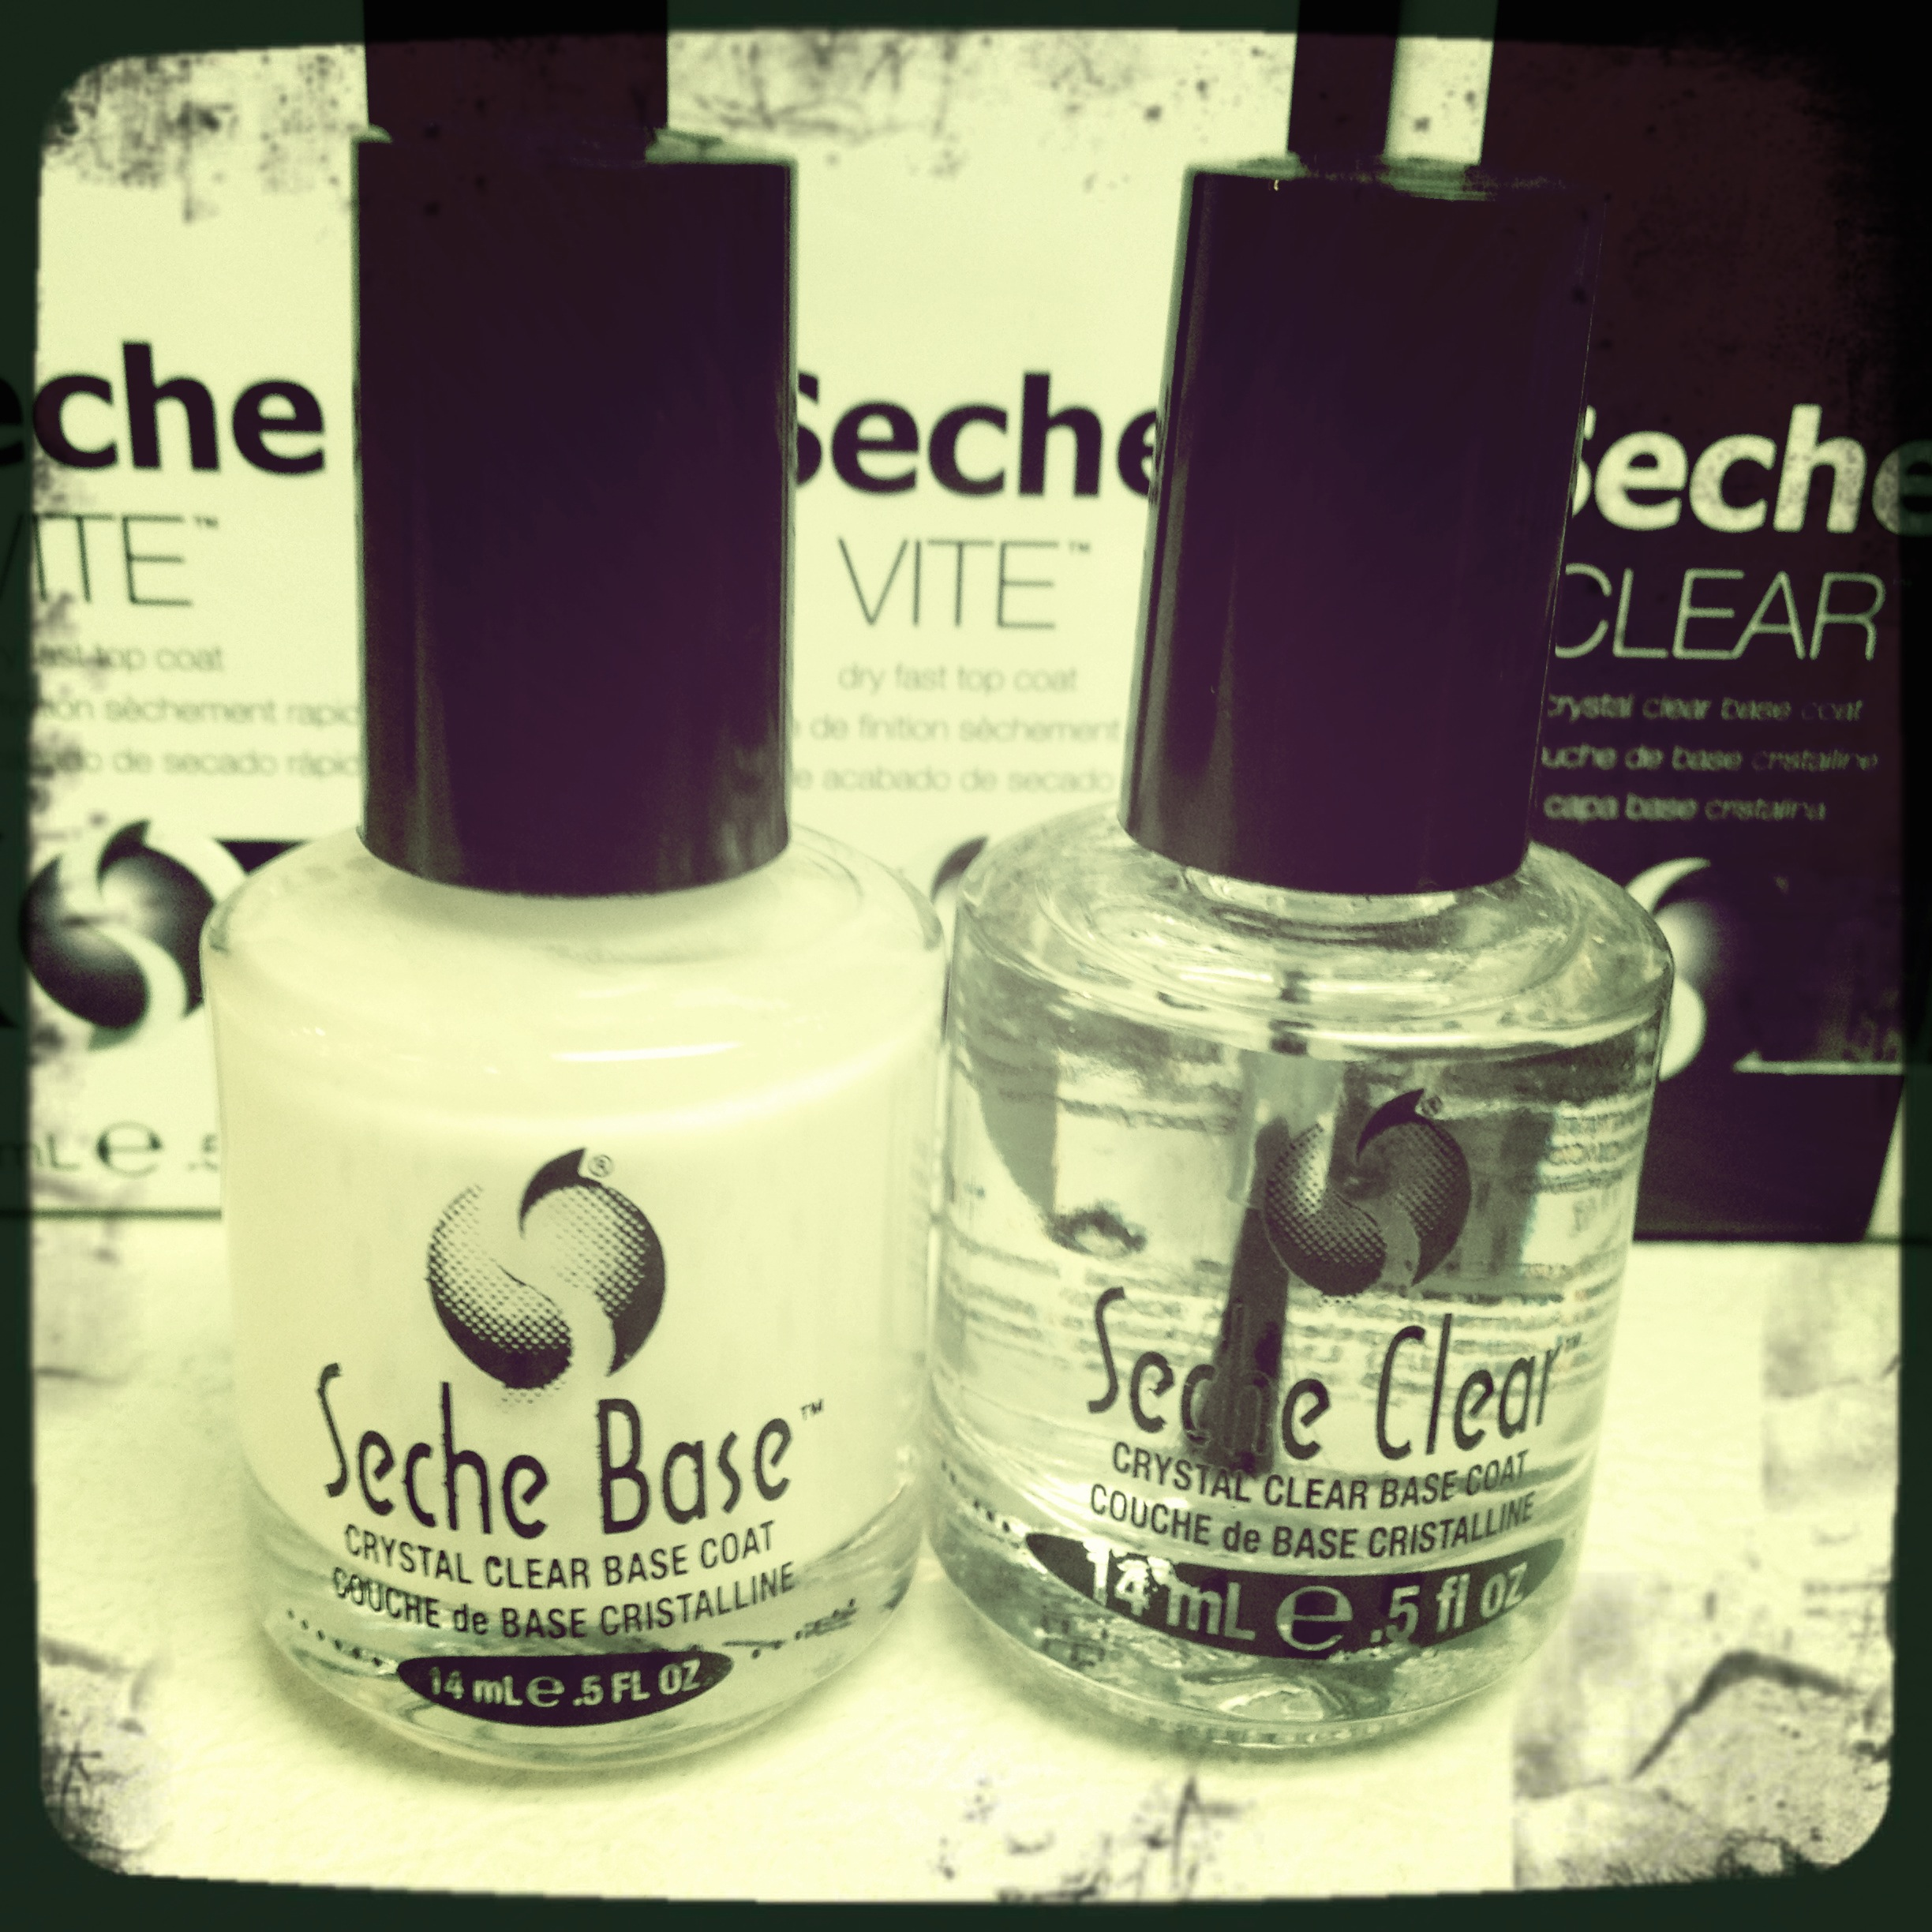 seche vite base coat instructions